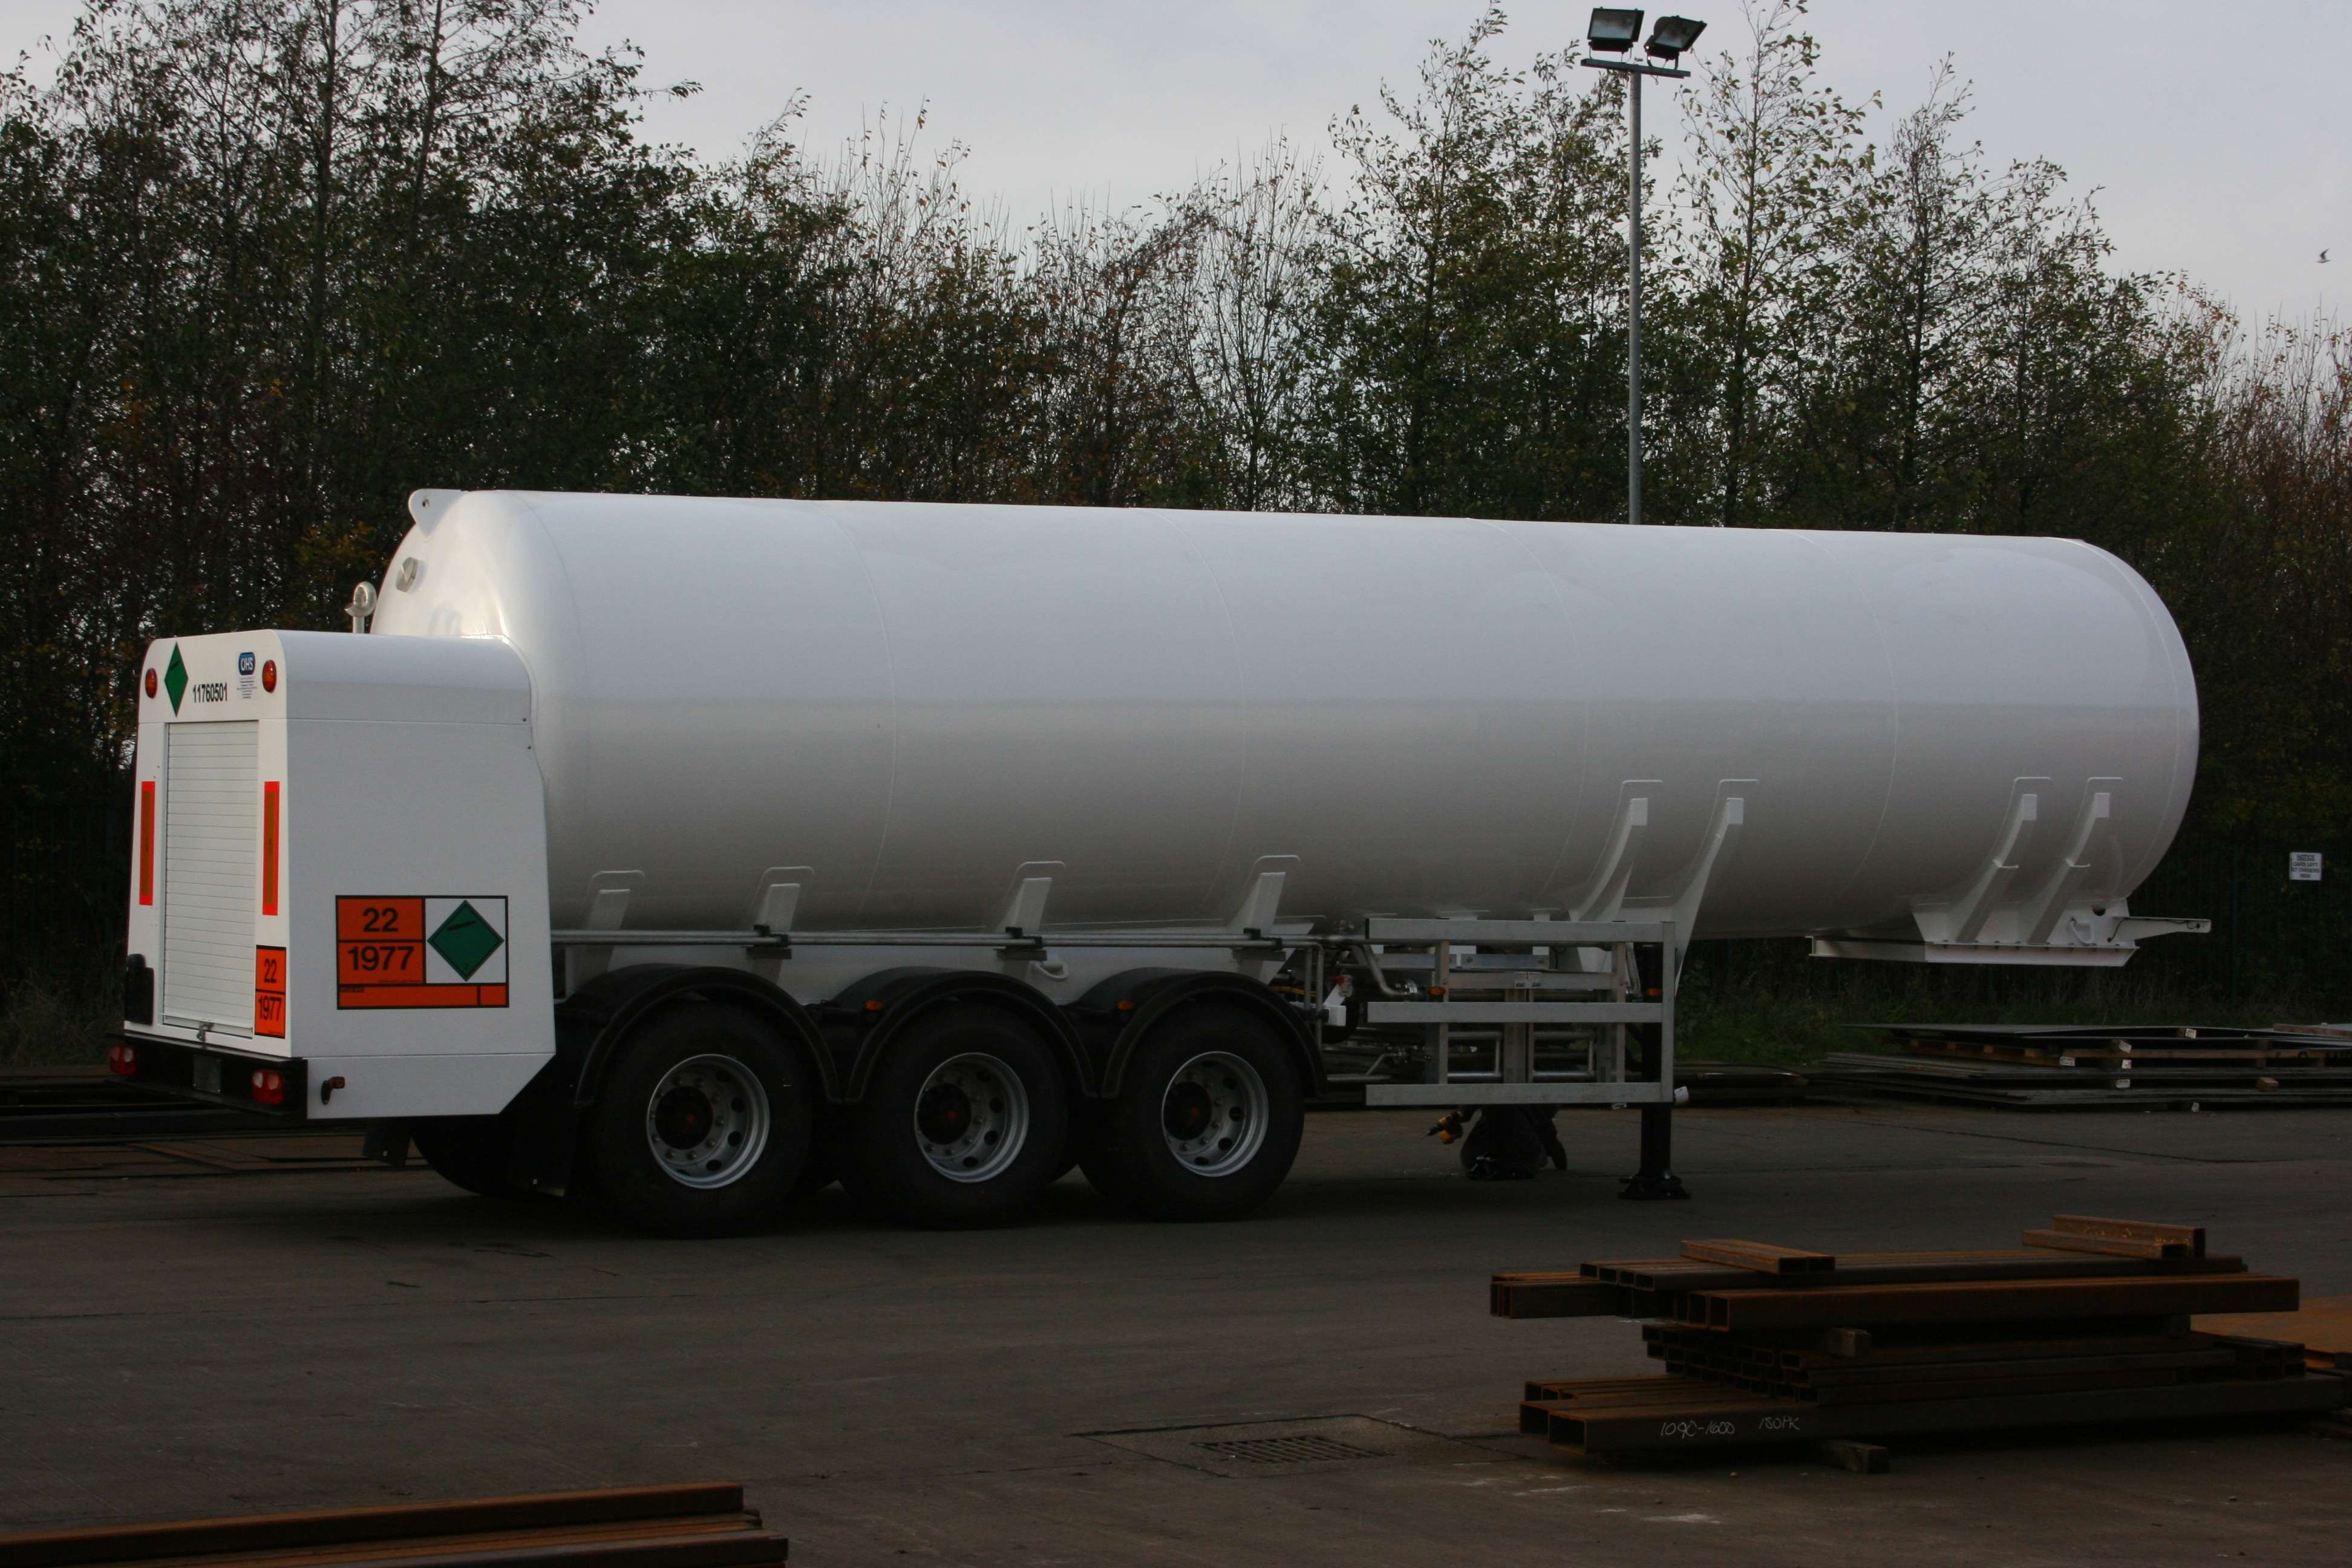 Cryo­genic semi trailer  with cus­tomer spe­cified tank, SAF drum braked axles, air suspension and carbon steel or stainless steel sub chassis. Tanker con­fig­ur­a­tion includes rear cab­inet, vapour­isers, vapour­iser guards, all elec­trics and light­ing, paint­work, cus­tomer logos and decals. Full engin­eer­ing design review and ADR/TPED approval.